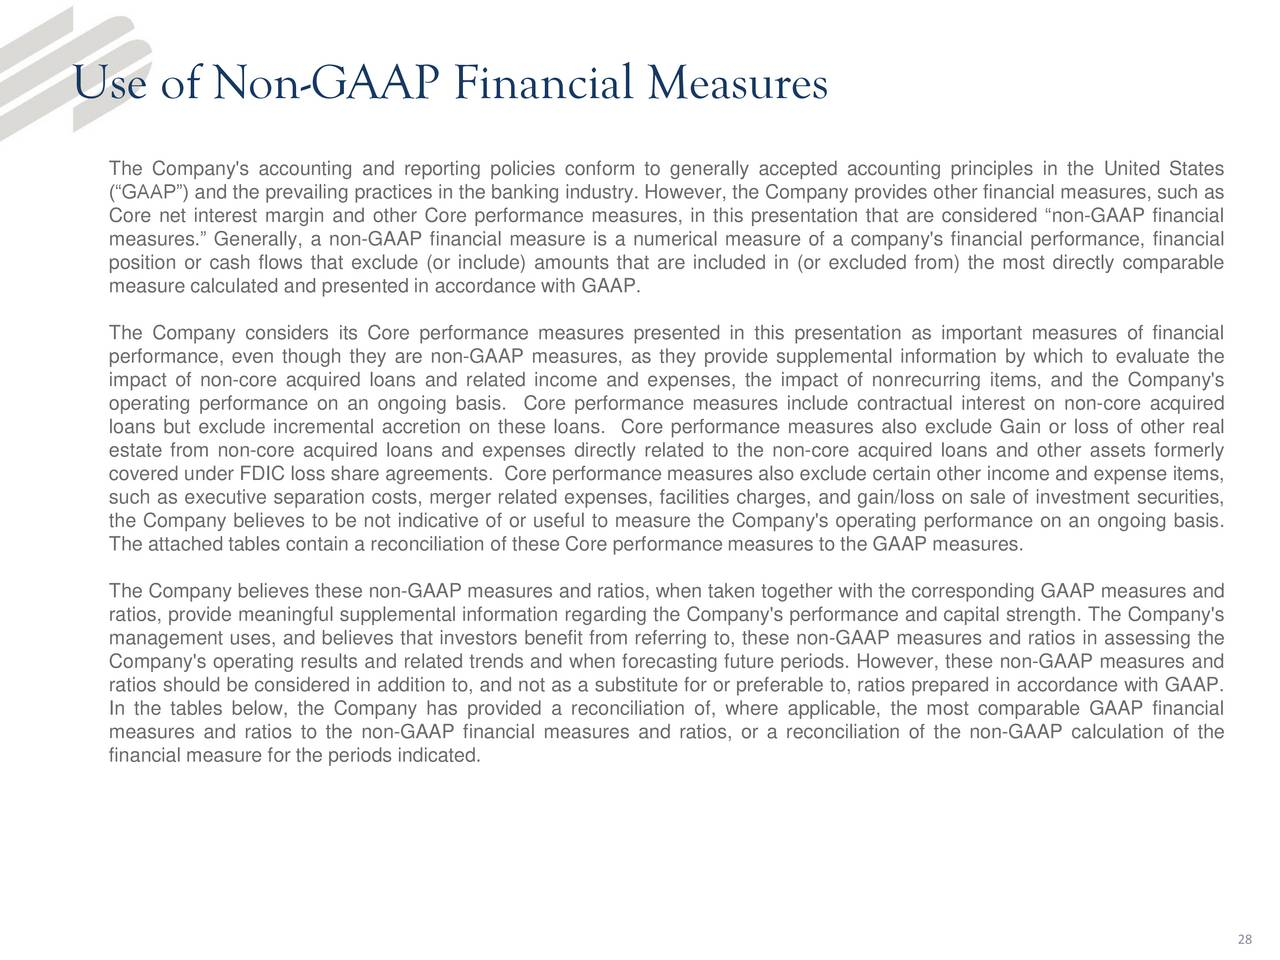 corporate generally accepted accounting principles and general Gaap generally accepted accounting principles there are notable differences between managerial accounting and financial accounting emphasis on the financial consequences of the past activities, mandatory external report and precision are only some of the elements financial accounting has different than the managerial accounting.